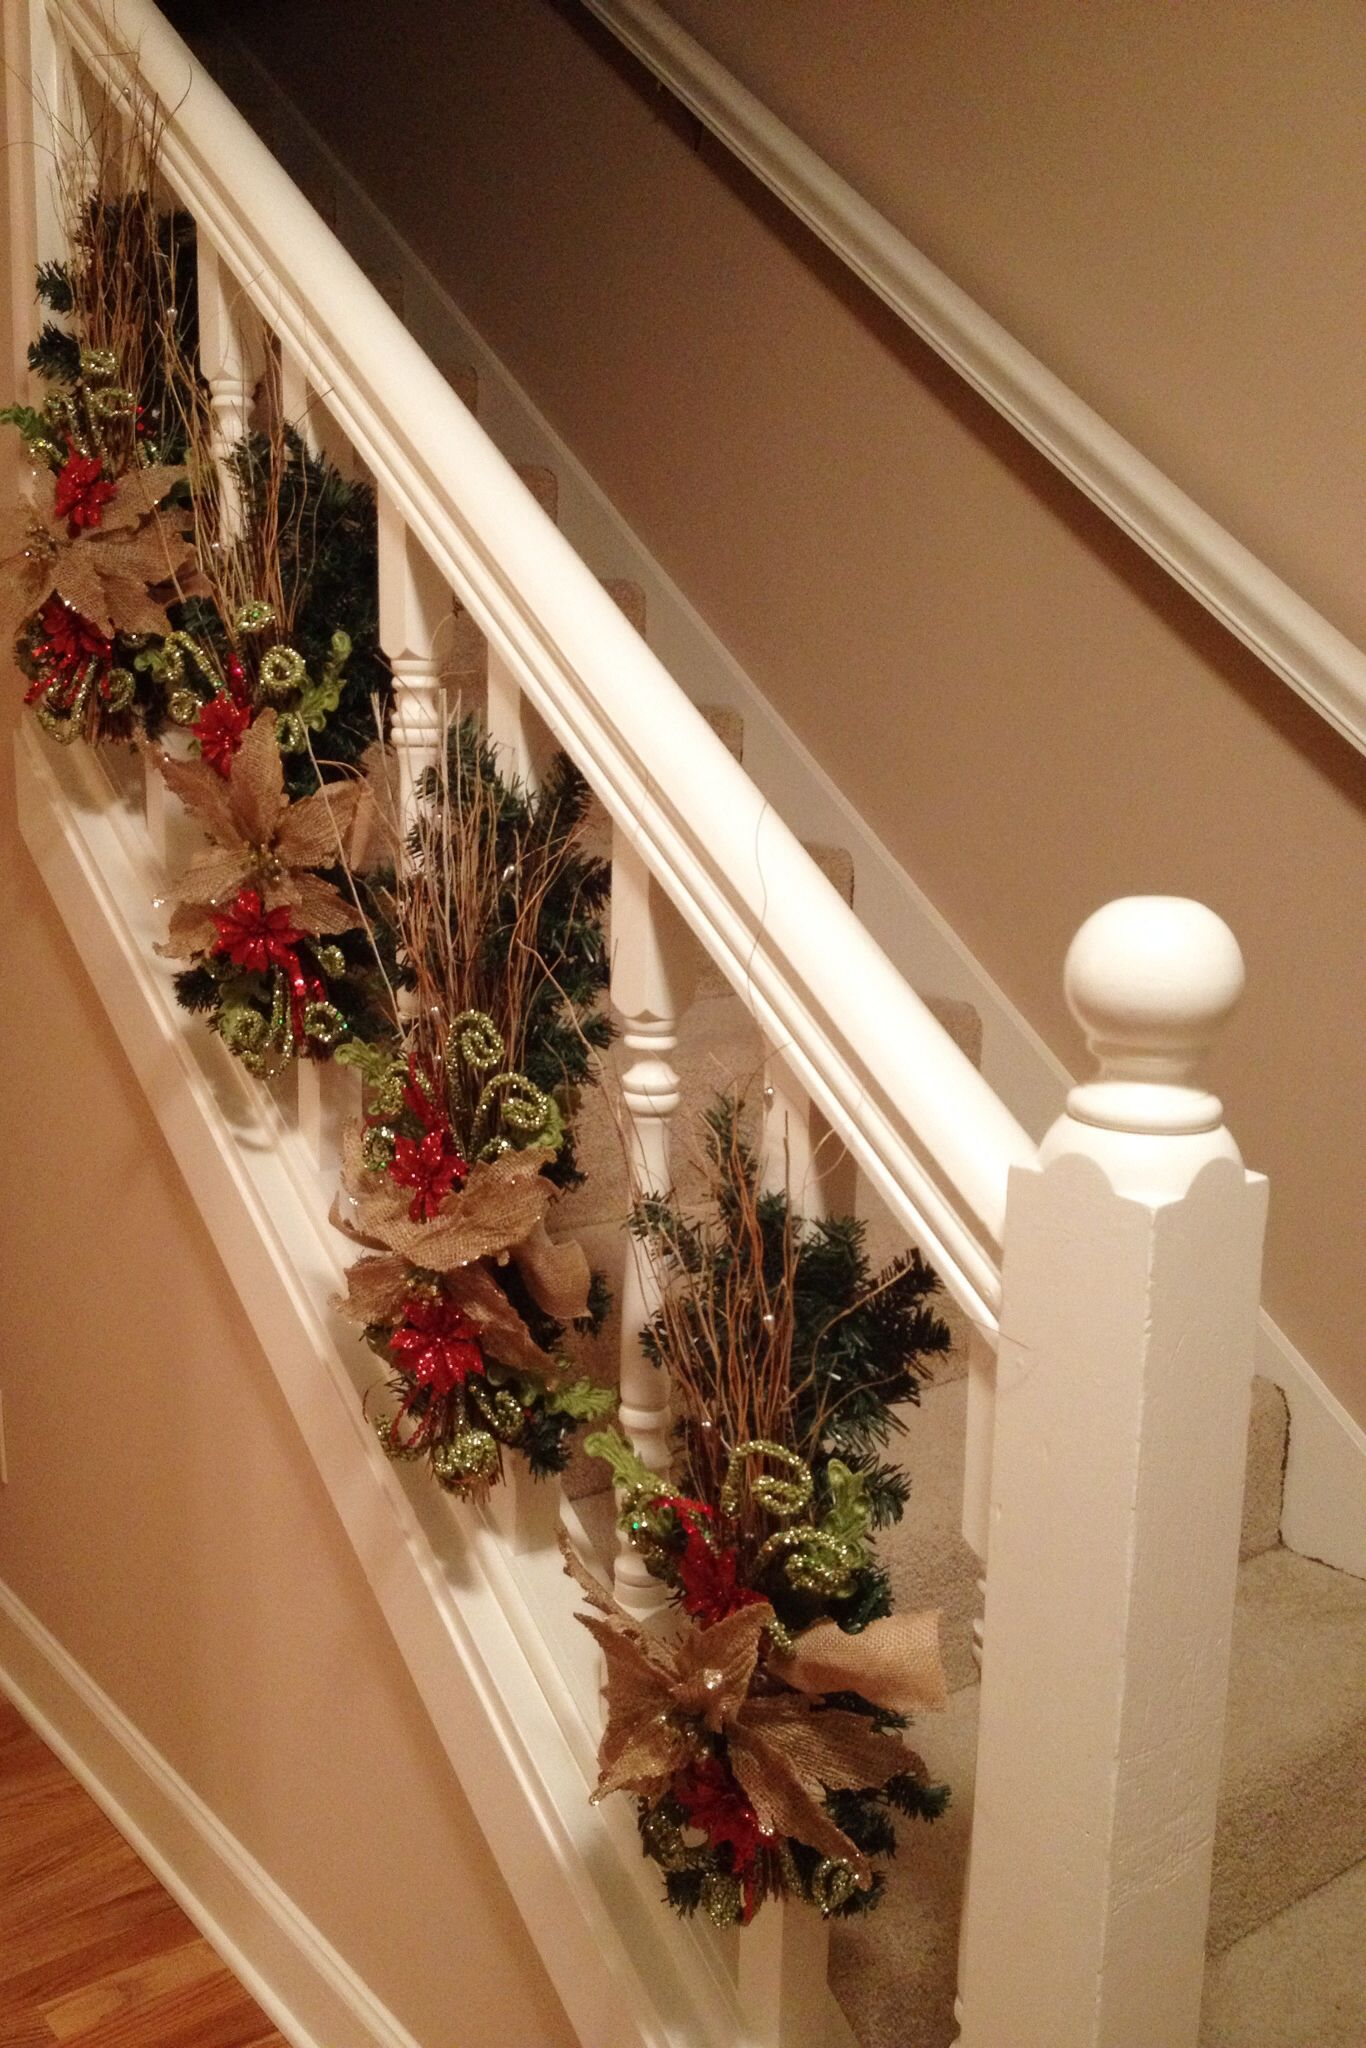 christmas banister decorations different from the standard garland - Railing Christmas Decorations